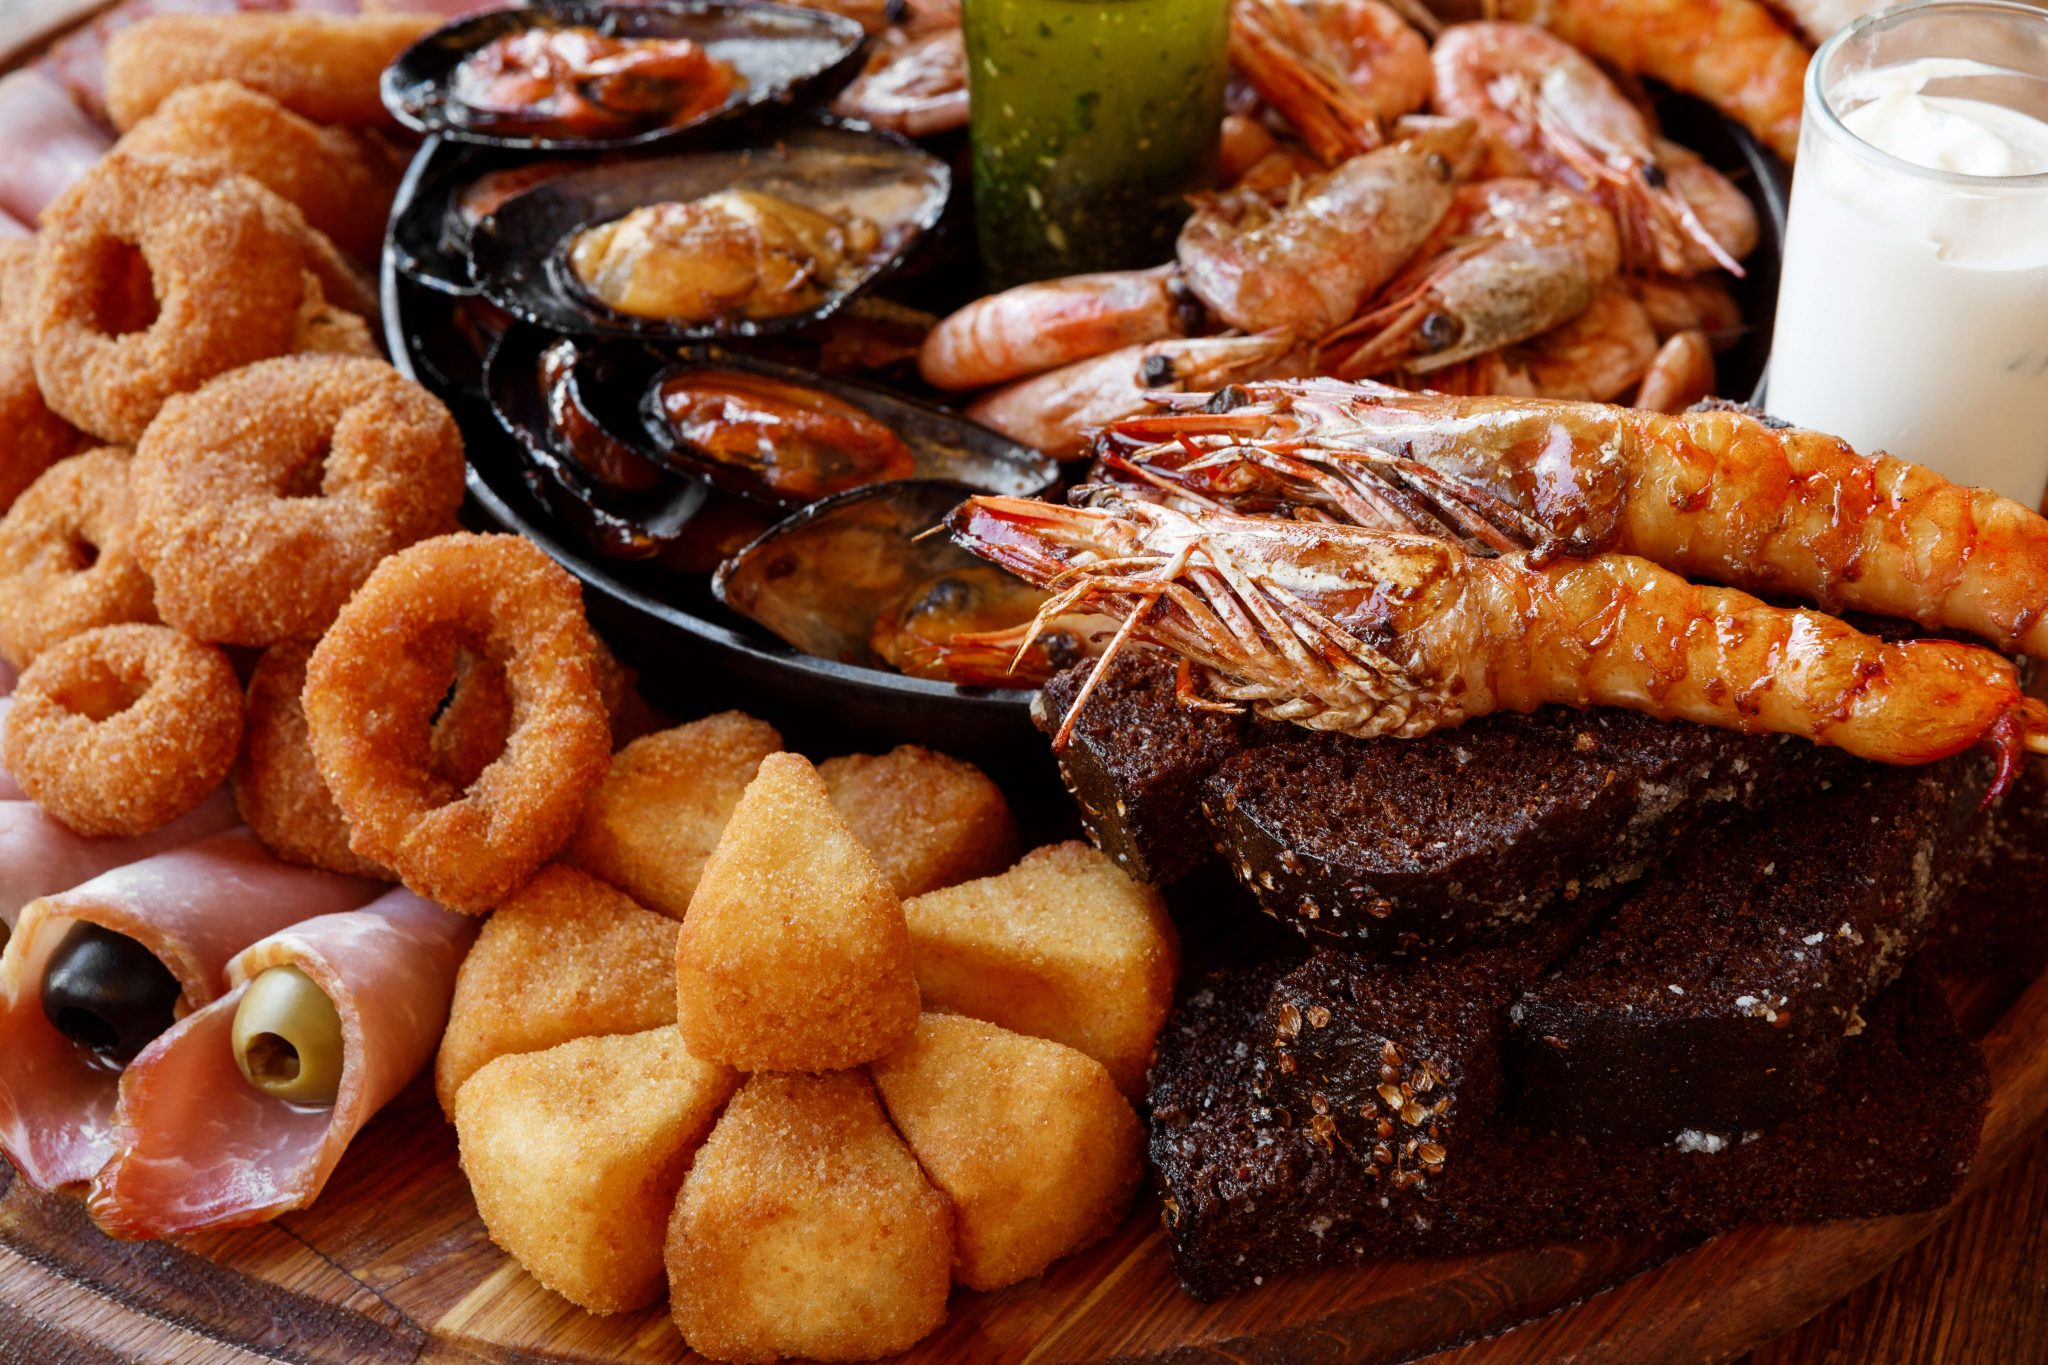 Picture of a Seafood Platter, but Has This Food Spoiled?